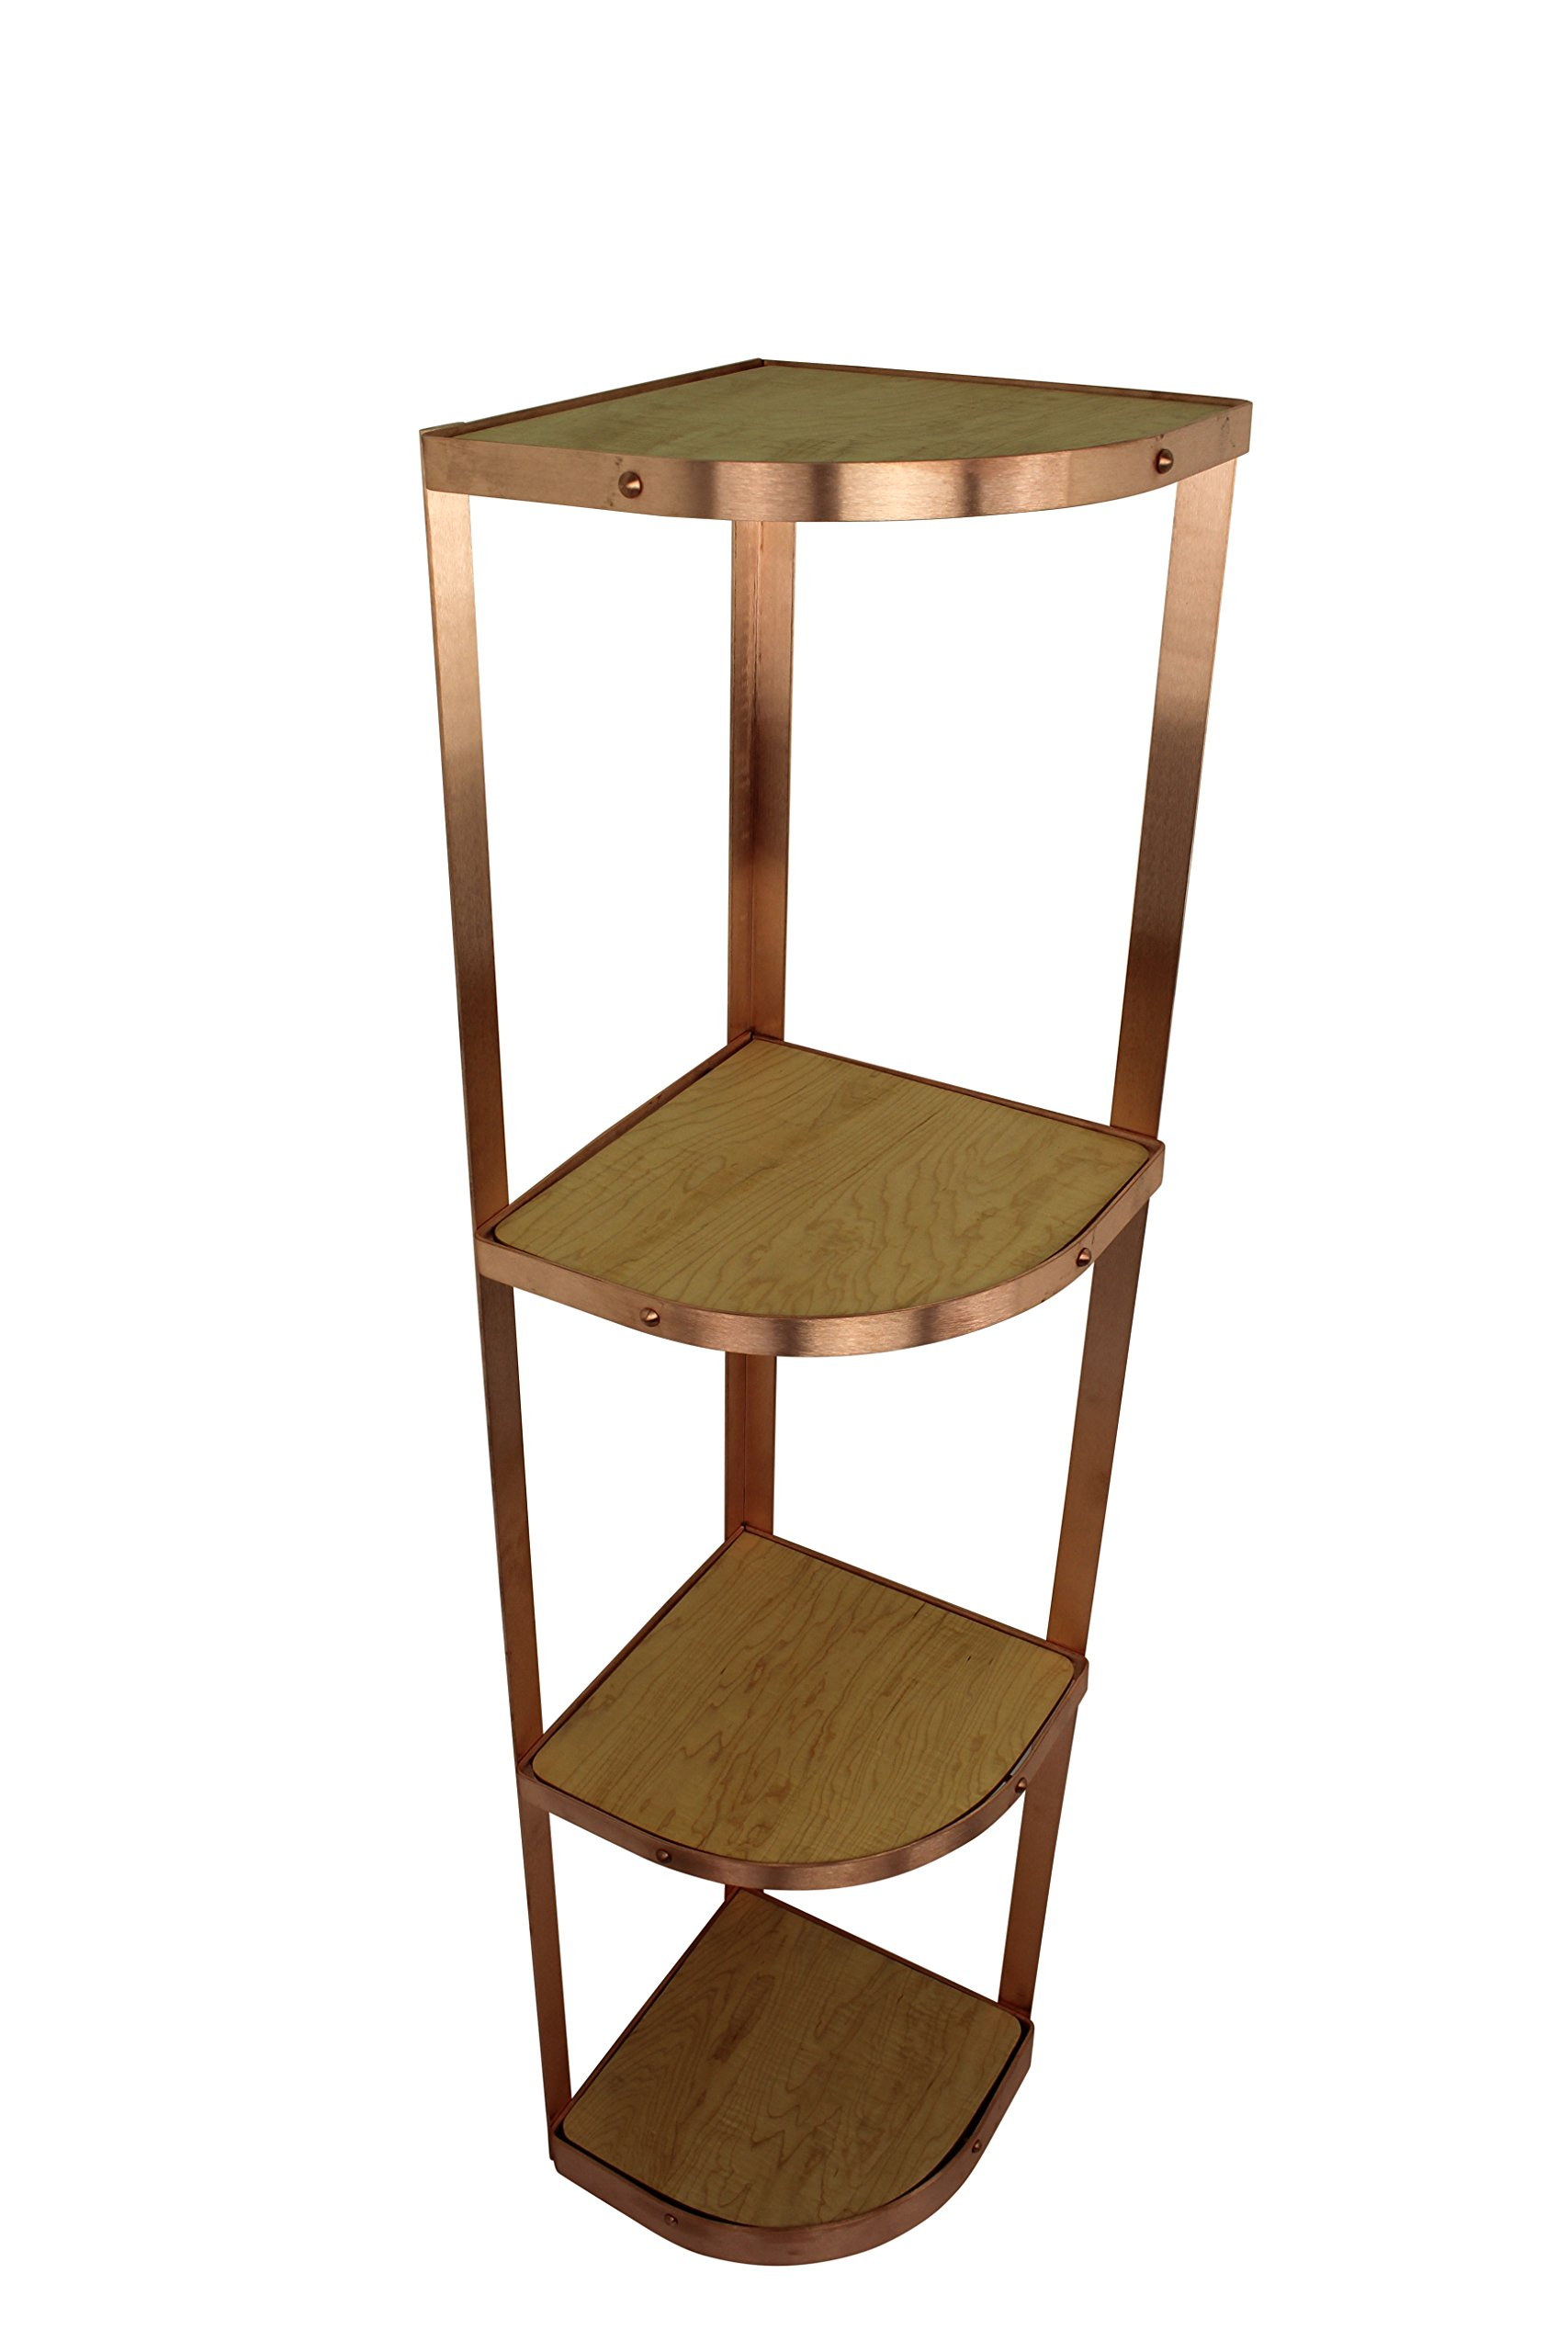 Enclume Cs4Kd Scup 4 Tier Unassembled Corner Stand, Brushed Copper, Brushed Copper